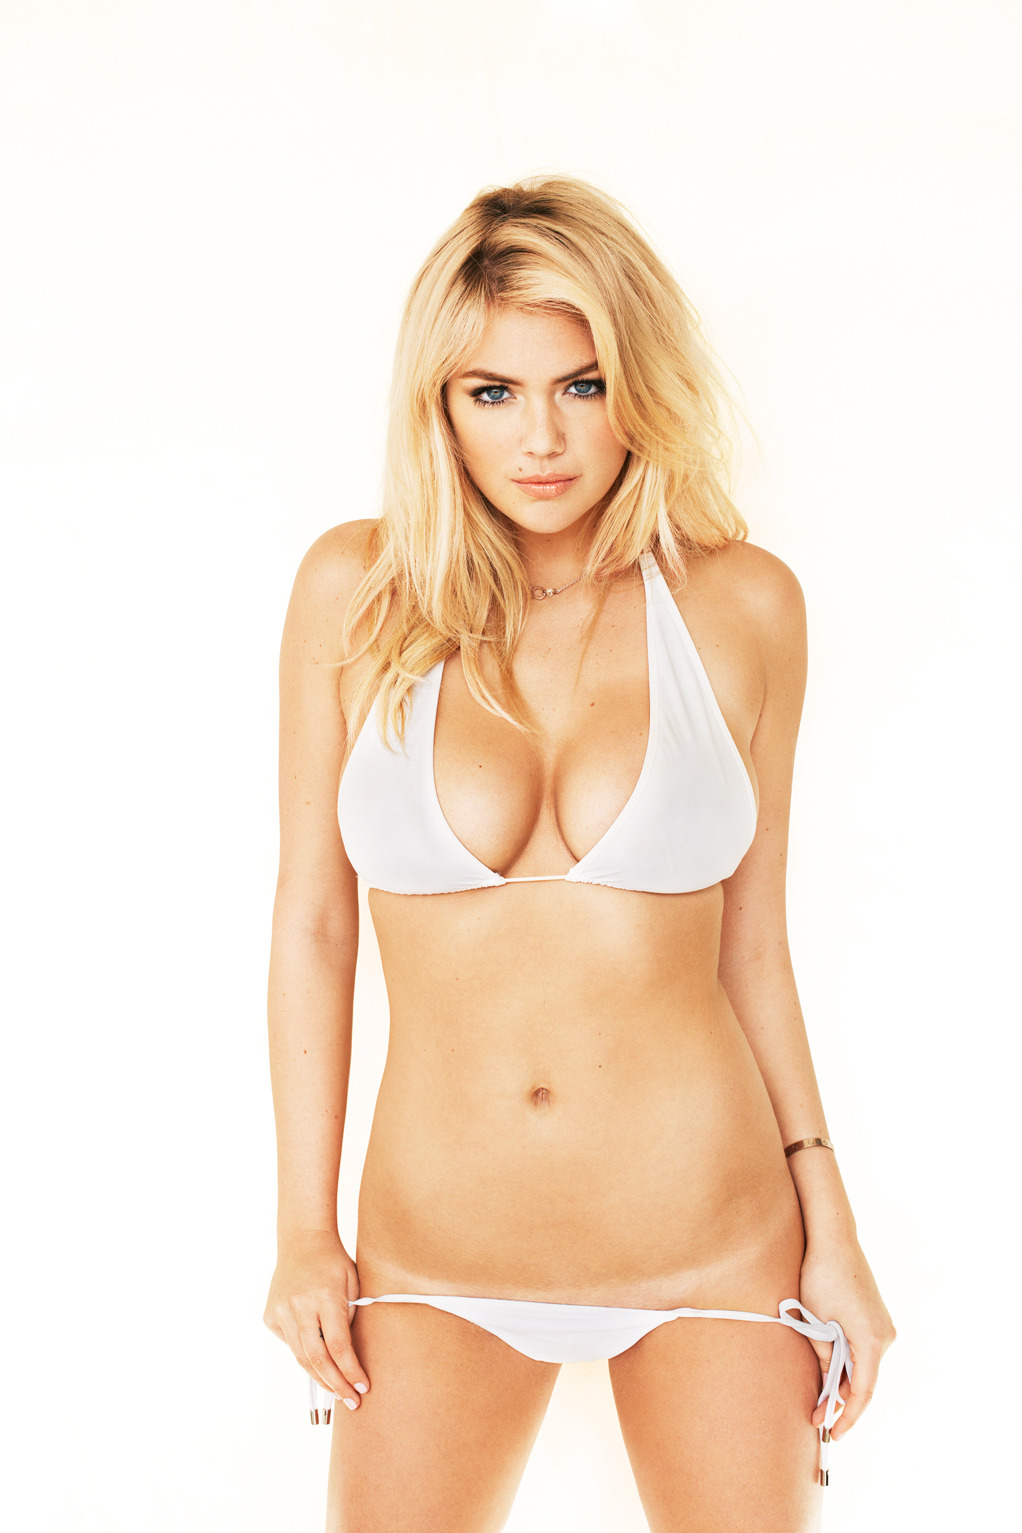 suicideblonde:  terrysdiary:  Kate Upton outtake #3  yes…..yes…..  MY SMELLING SALTS!